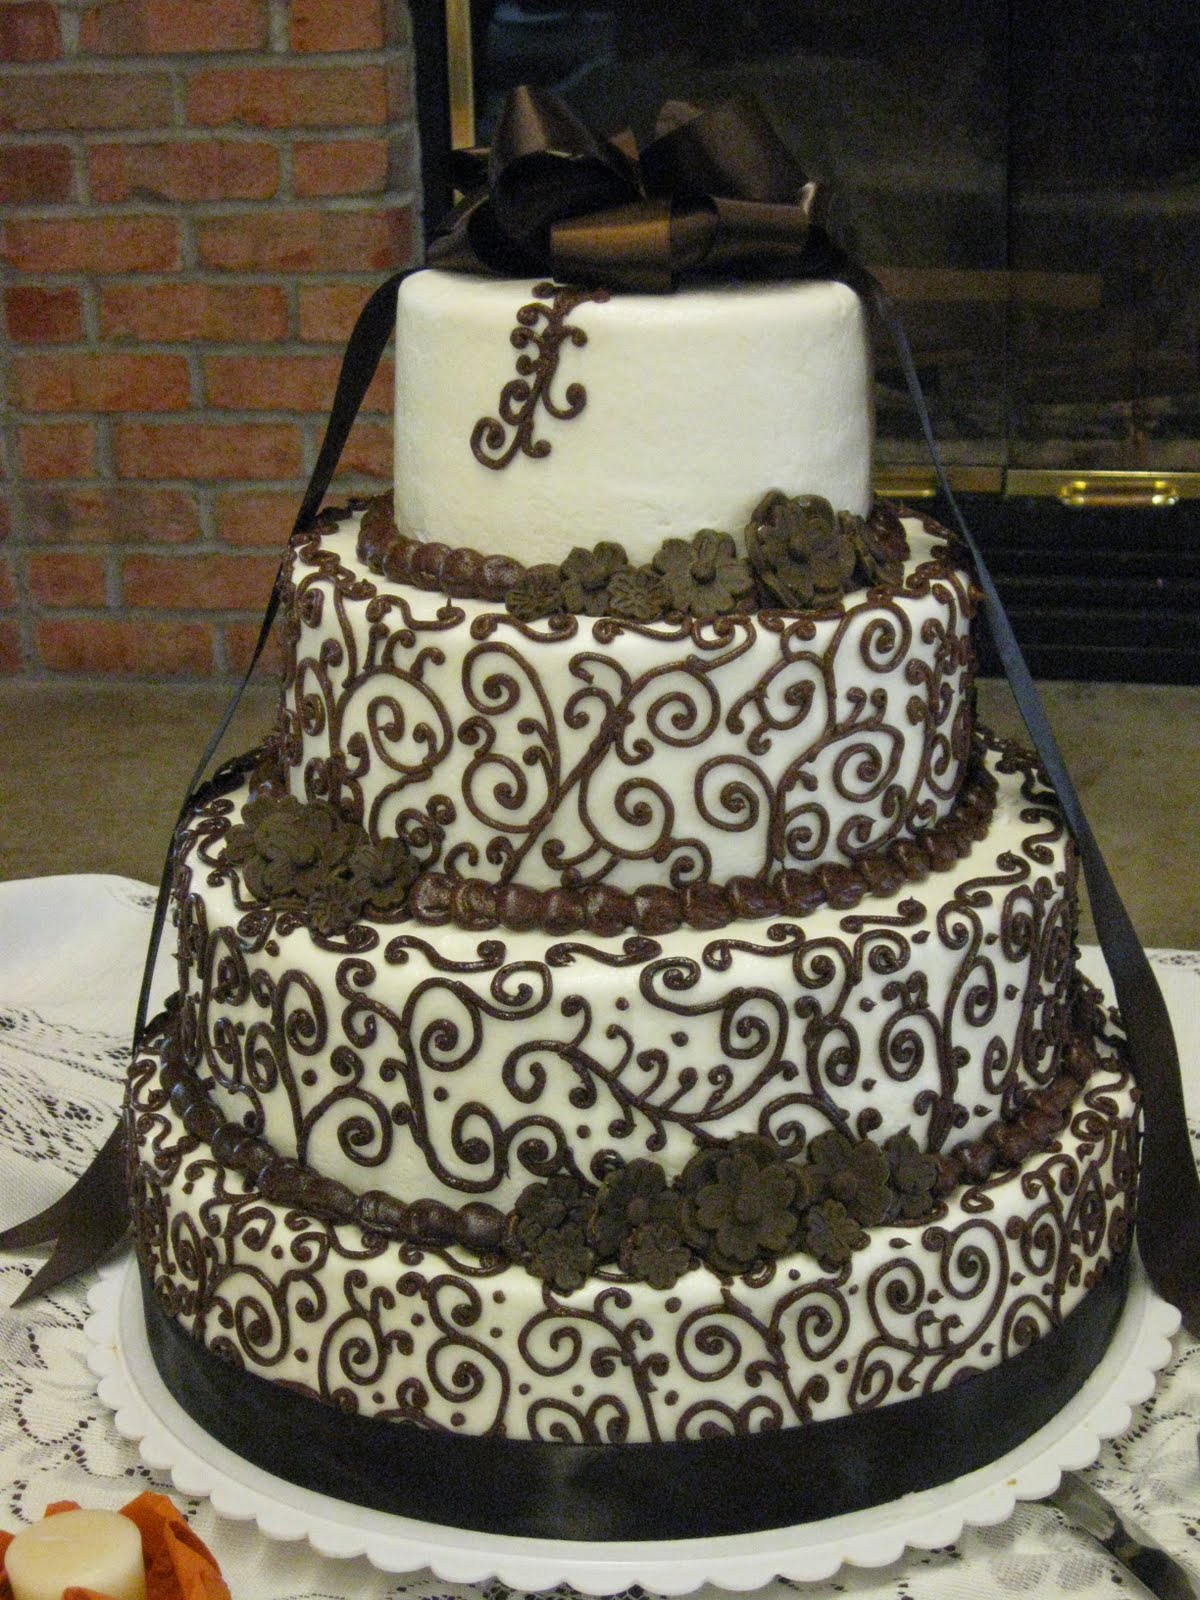 amy lodice rochester ny wedding cakes. Black Bedroom Furniture Sets. Home Design Ideas